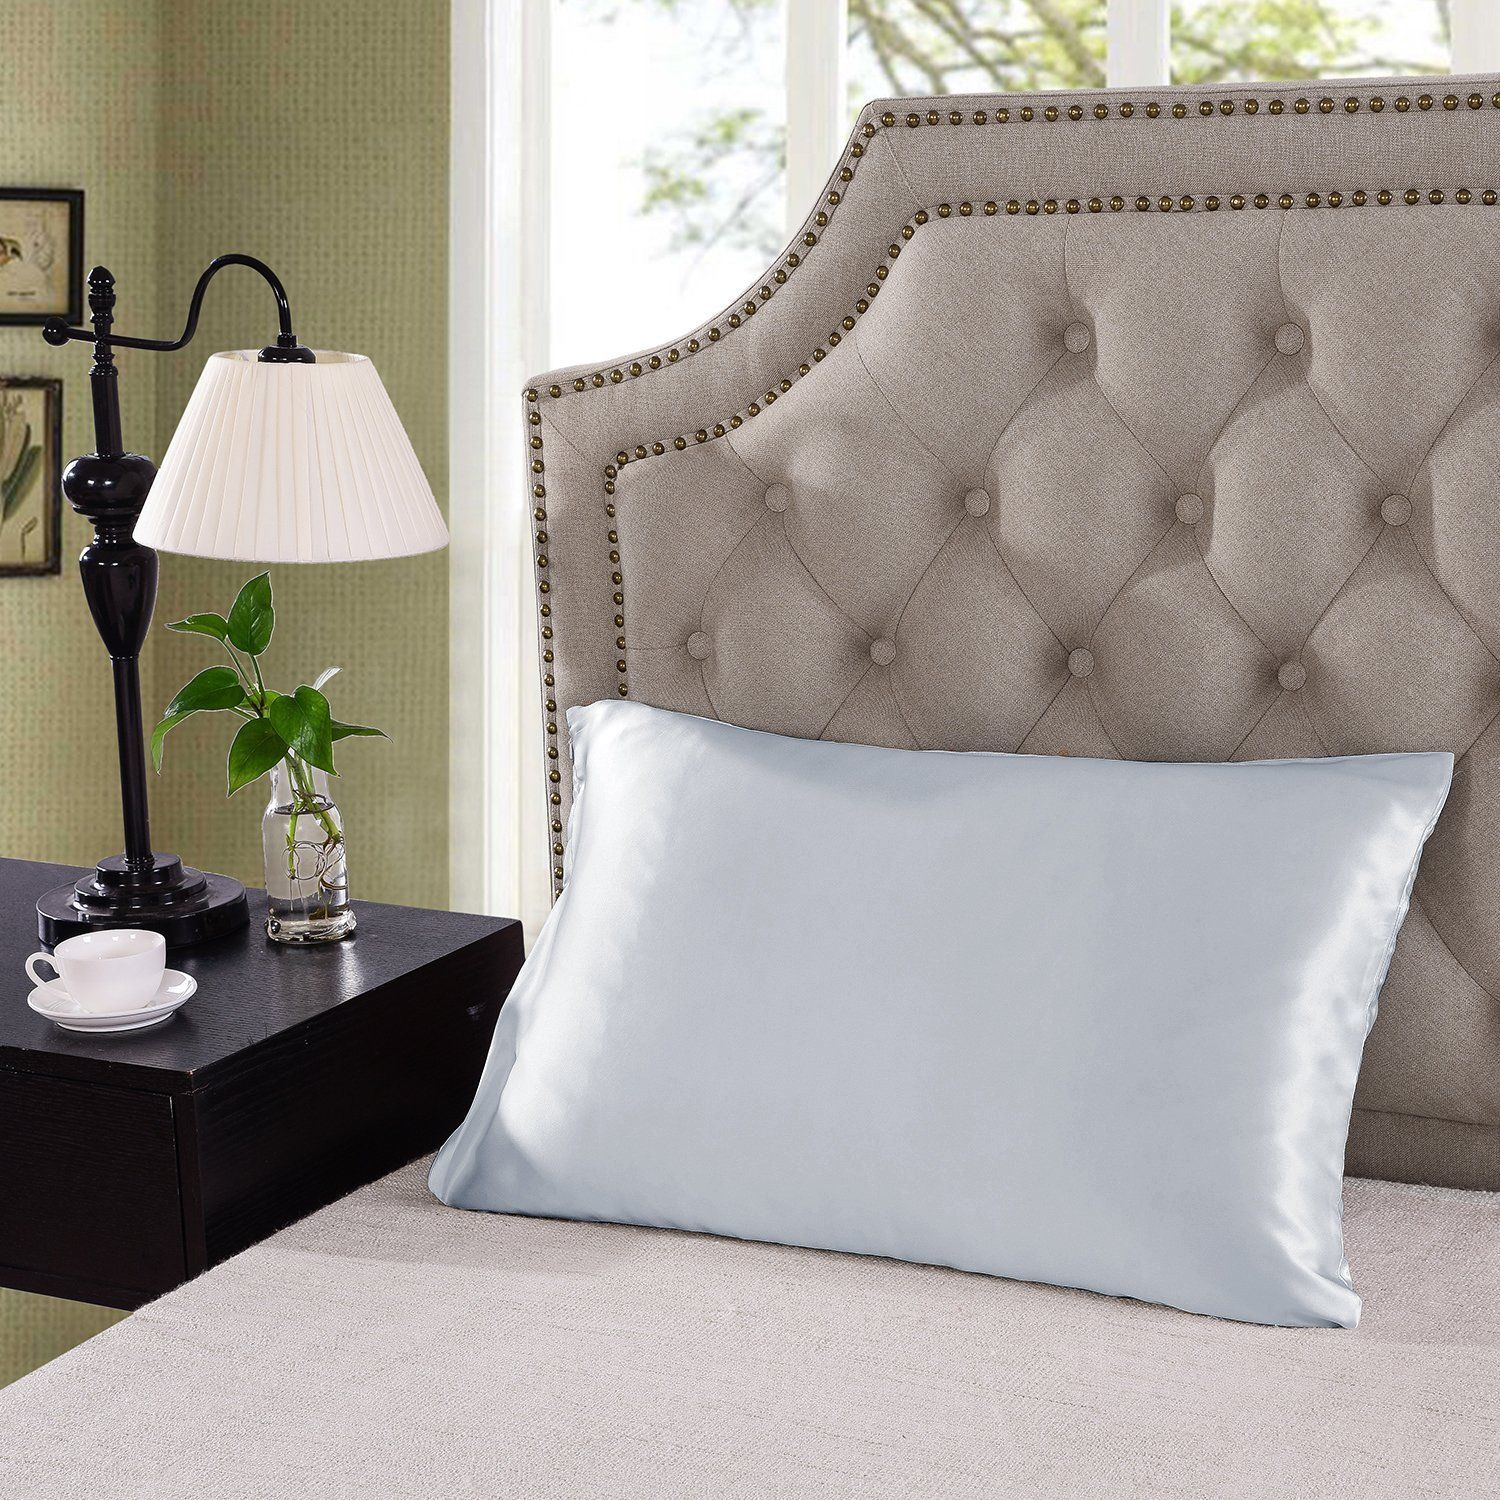 Royal Comfort Mulberry Soft Silk Hypoallergenic Pillowcase